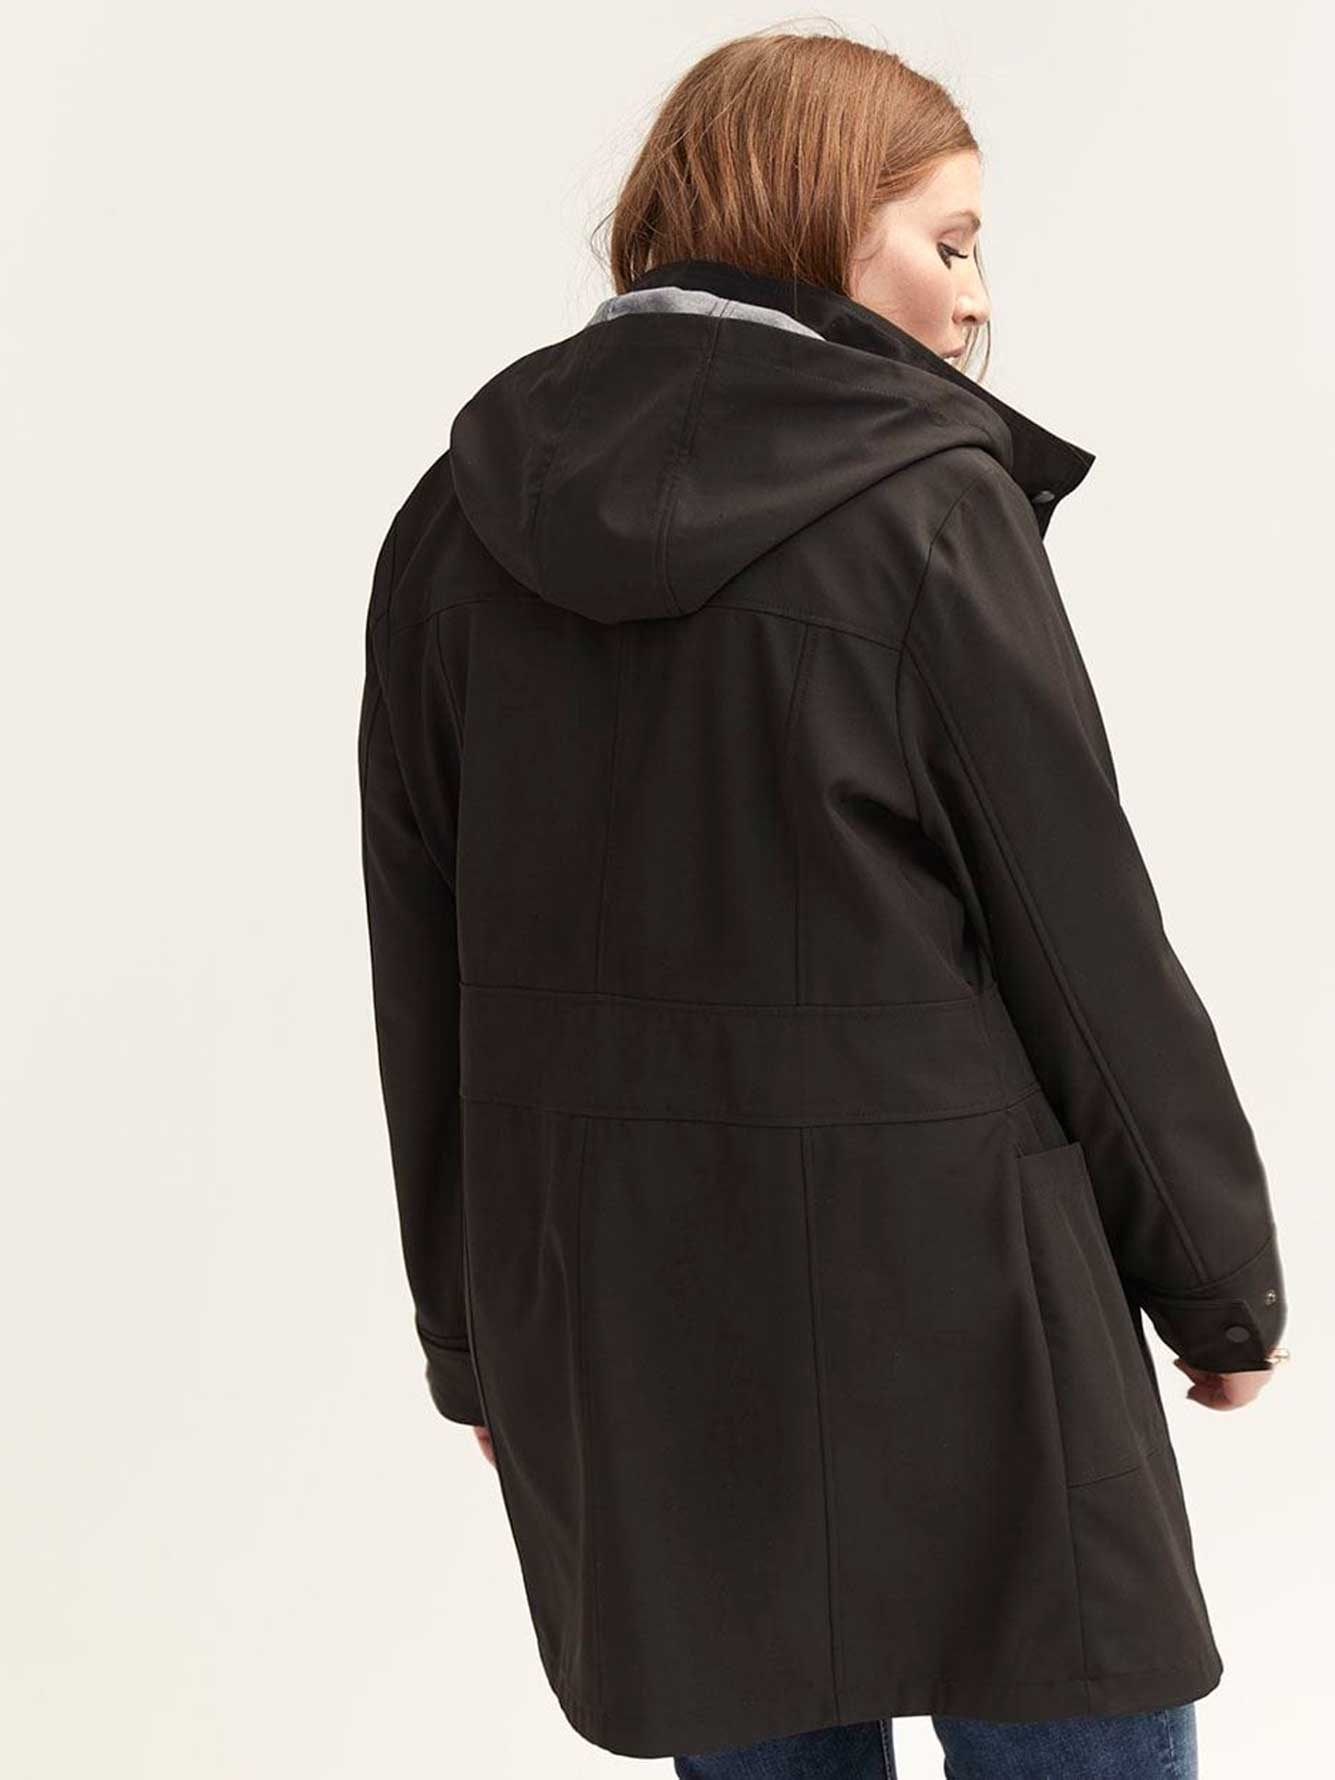 Soft-Shell Jacket with Removable Hood - Michel Studio